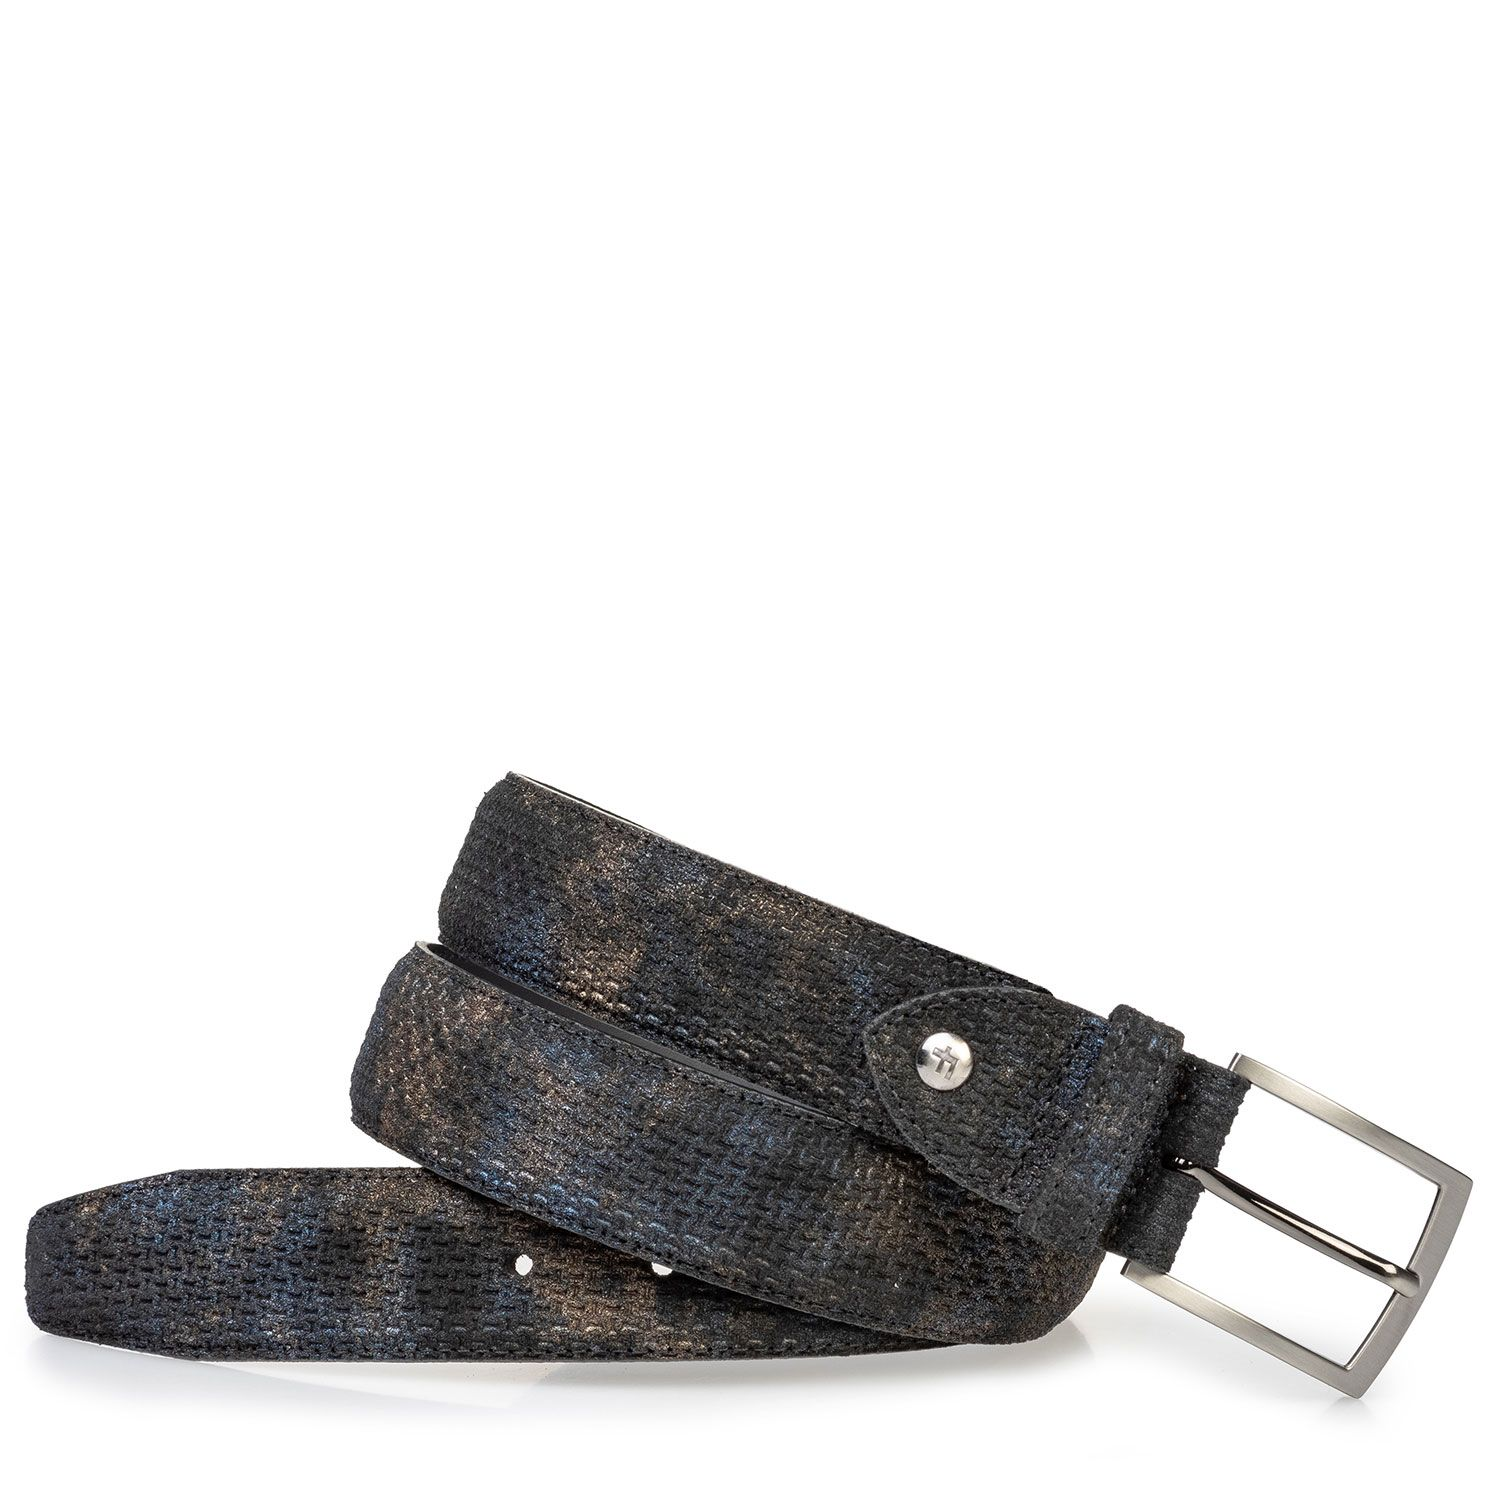 75203/45 - Suede leather belt bronze with print